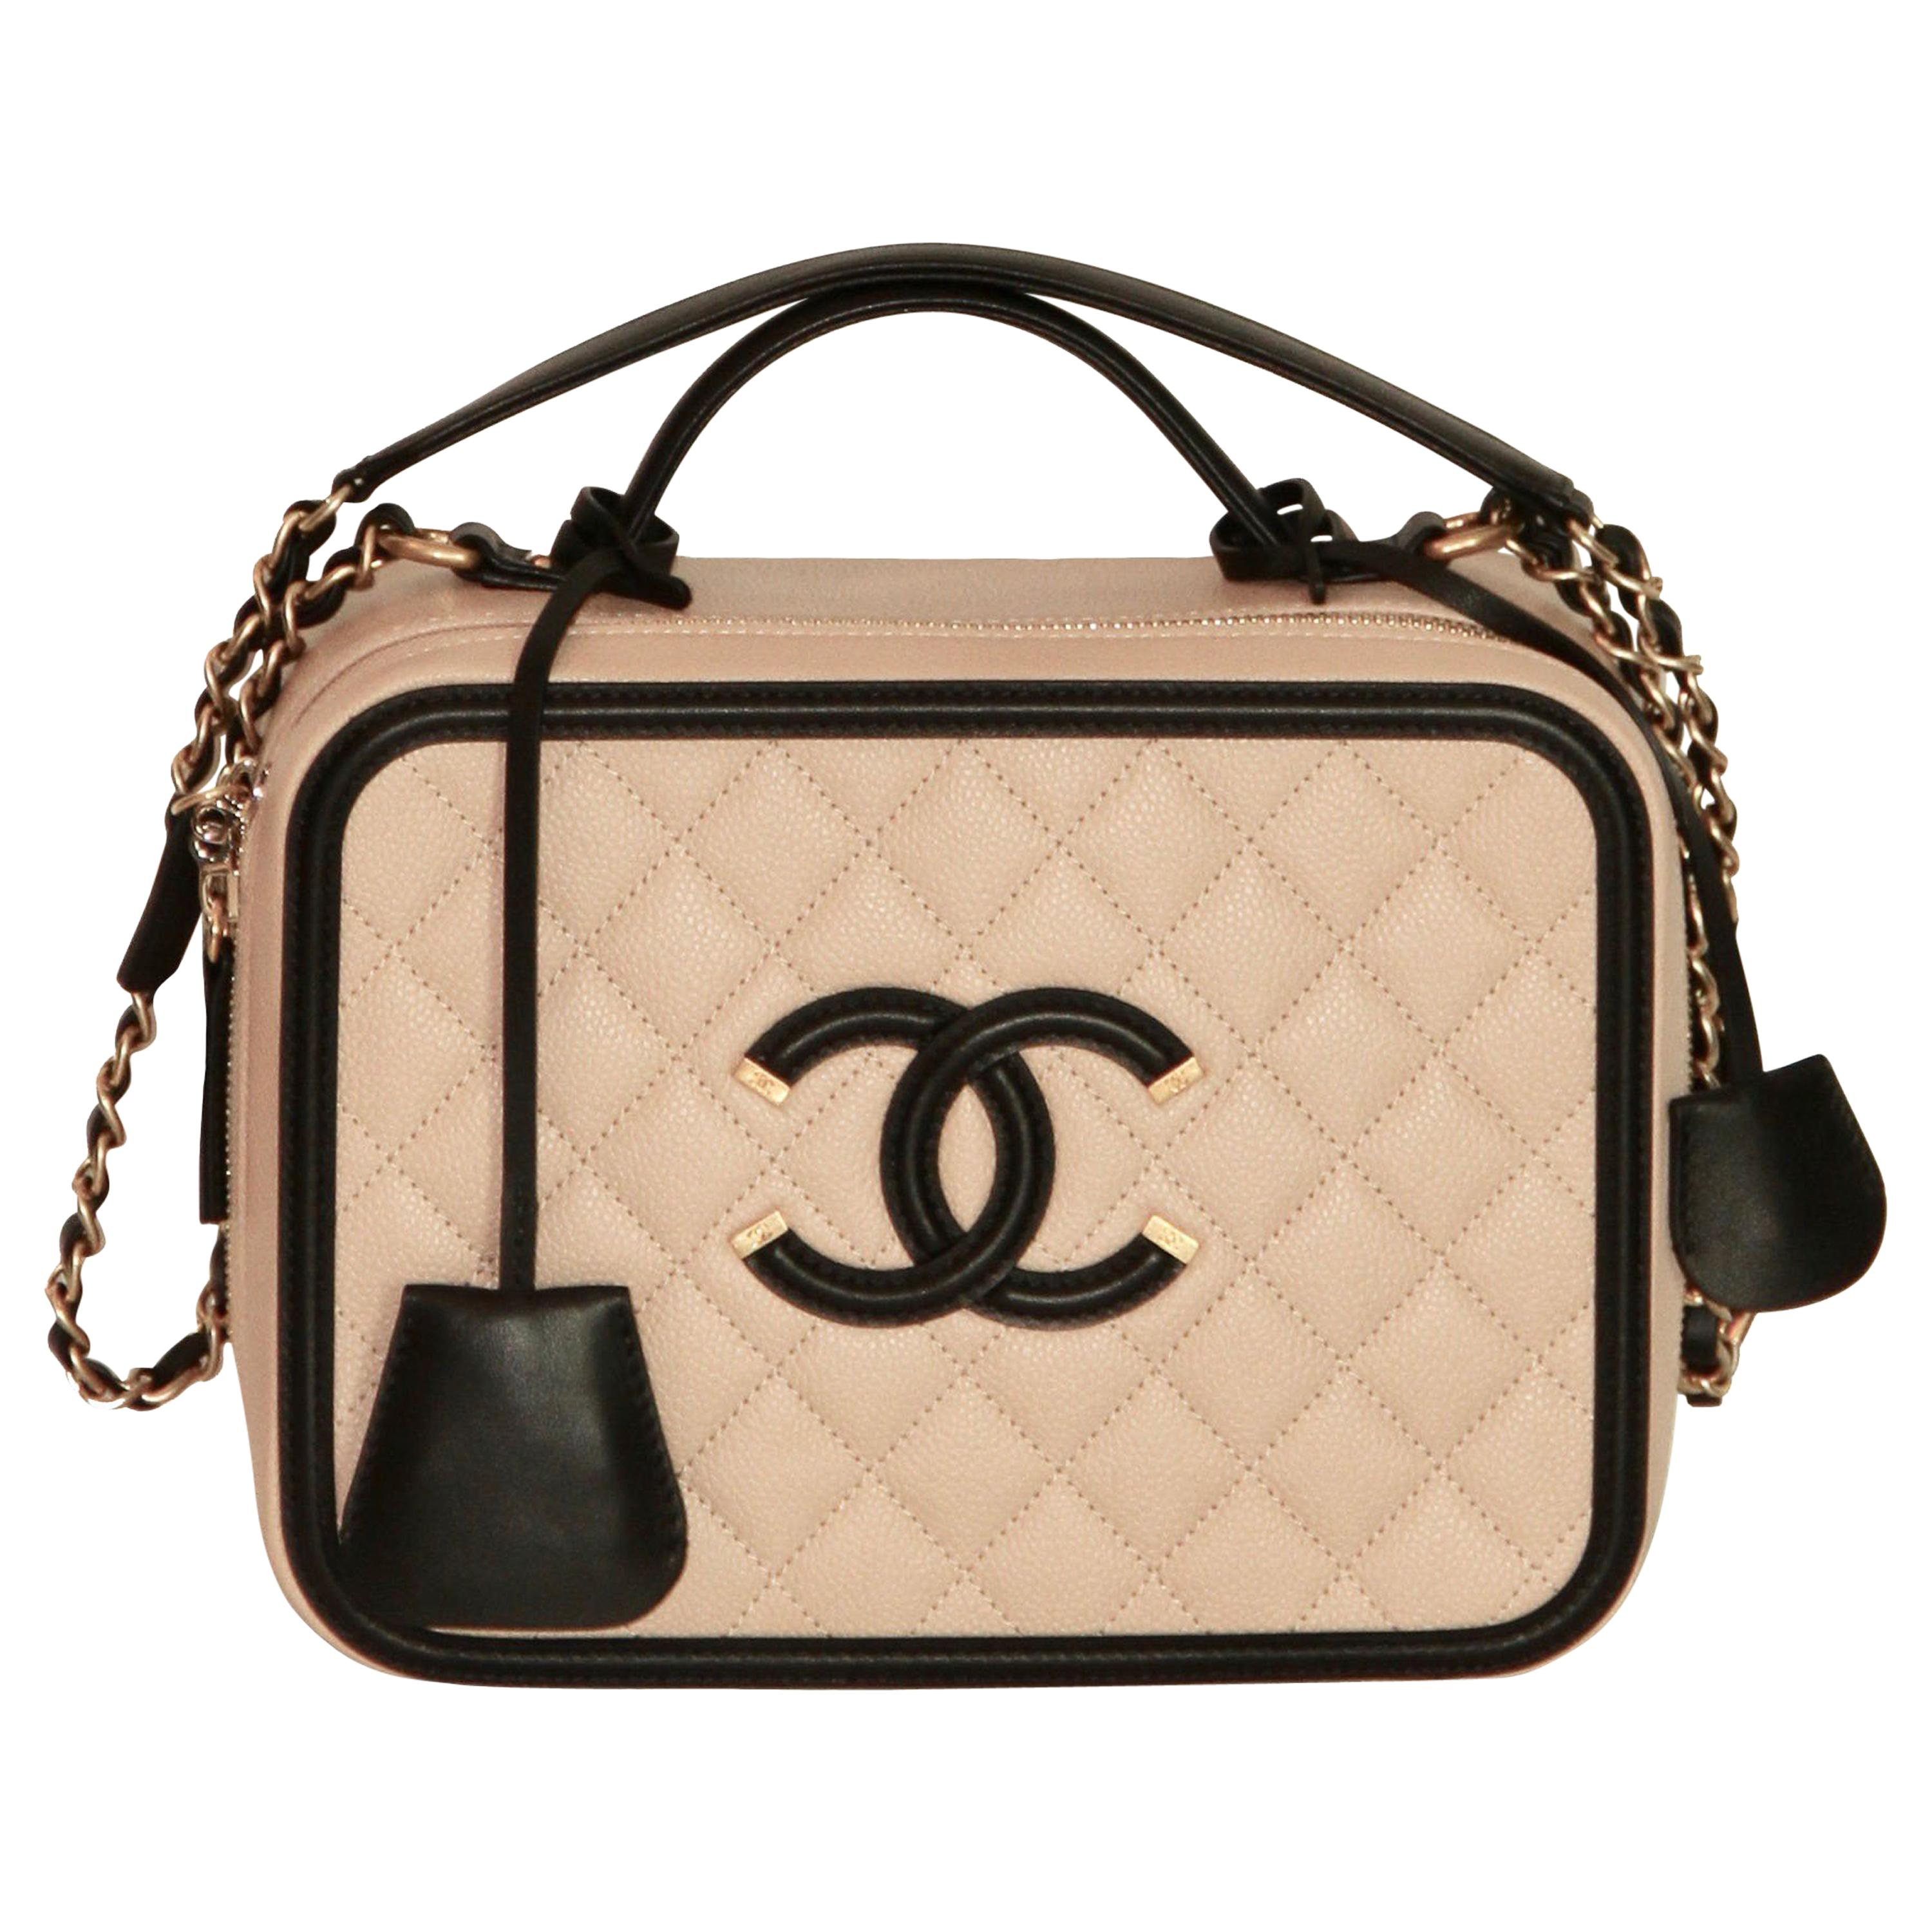 CHANEL CC Filigree Vanity Case Nude / Black Grained Leather at 1stdibs